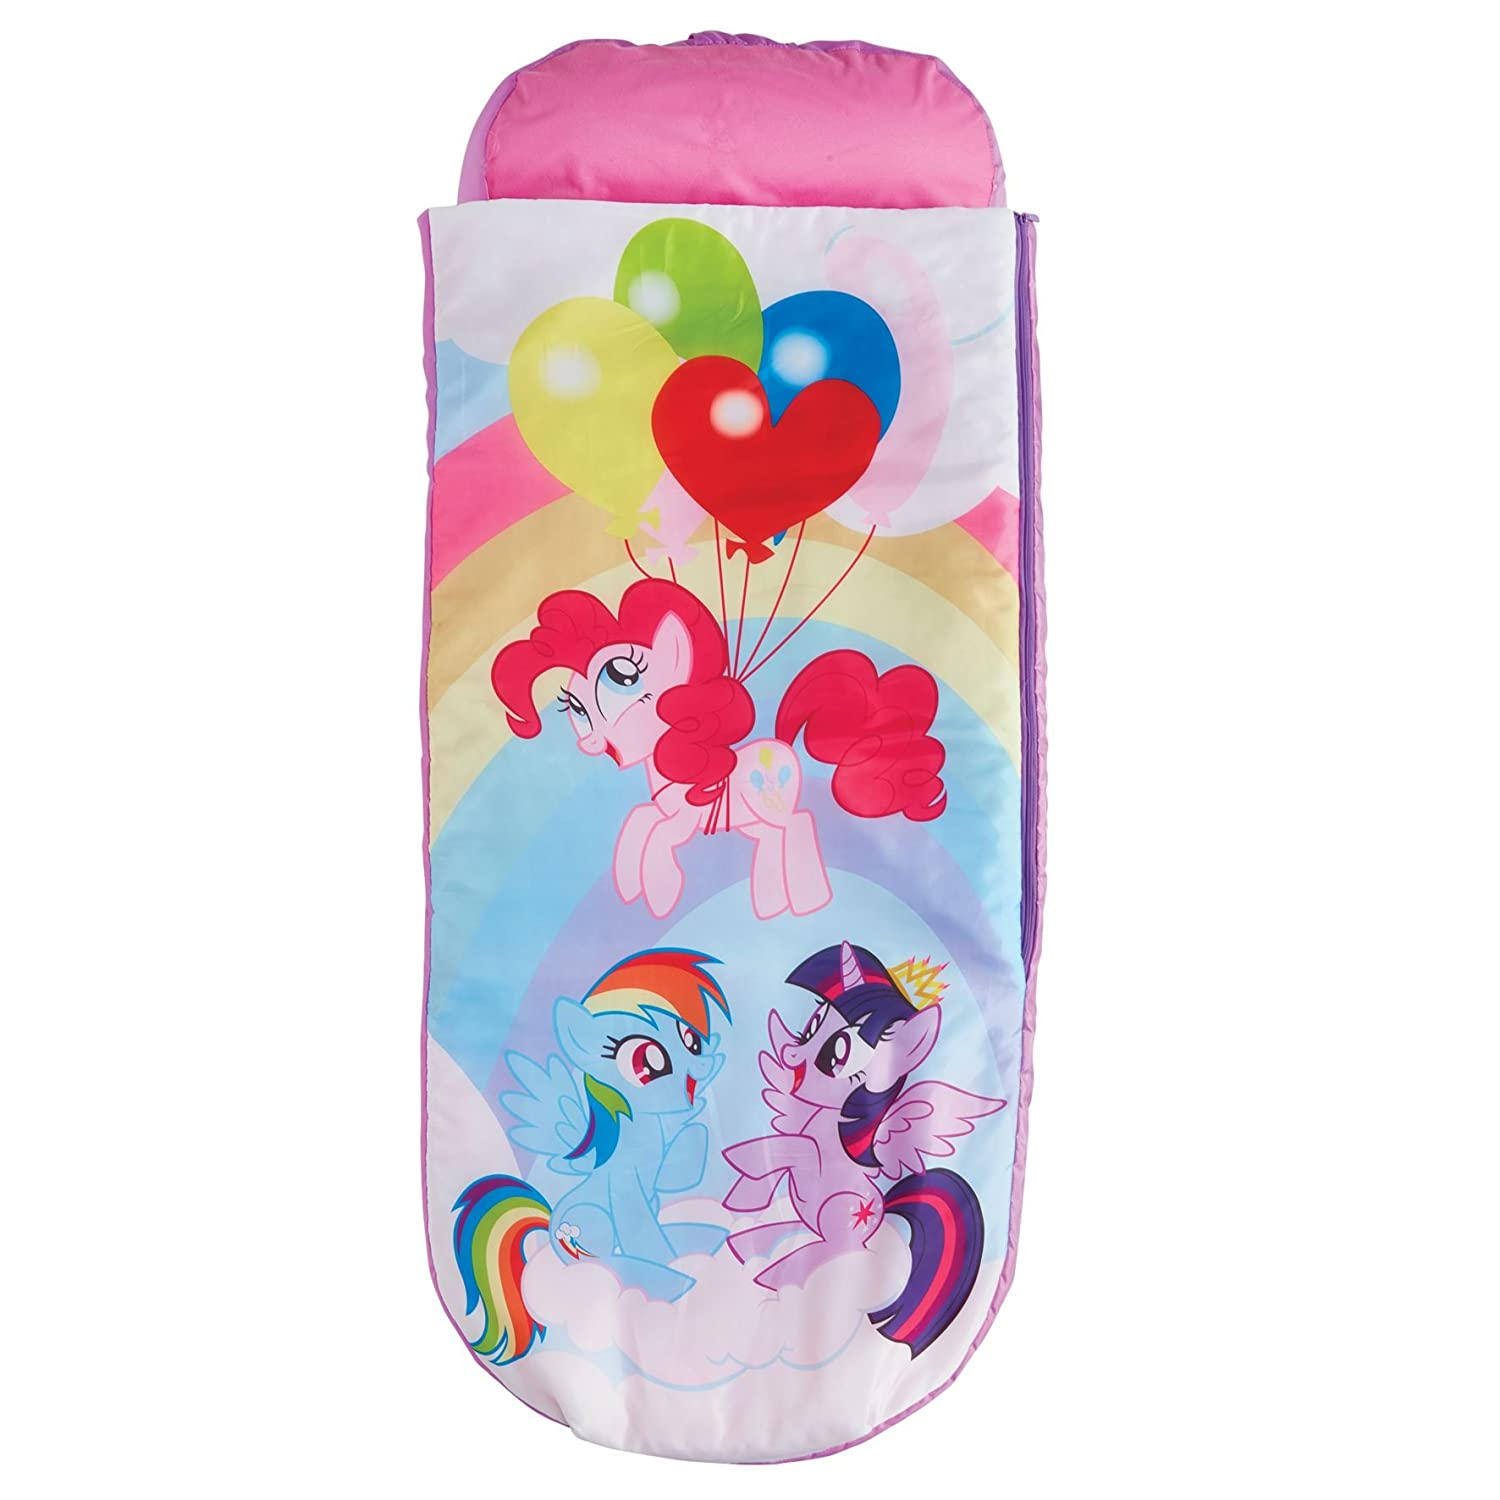 My Little Pony - Junior-ReadyBed – Kinder-Schlafsack und Luftbett in einem Worlds Apart 406MLN